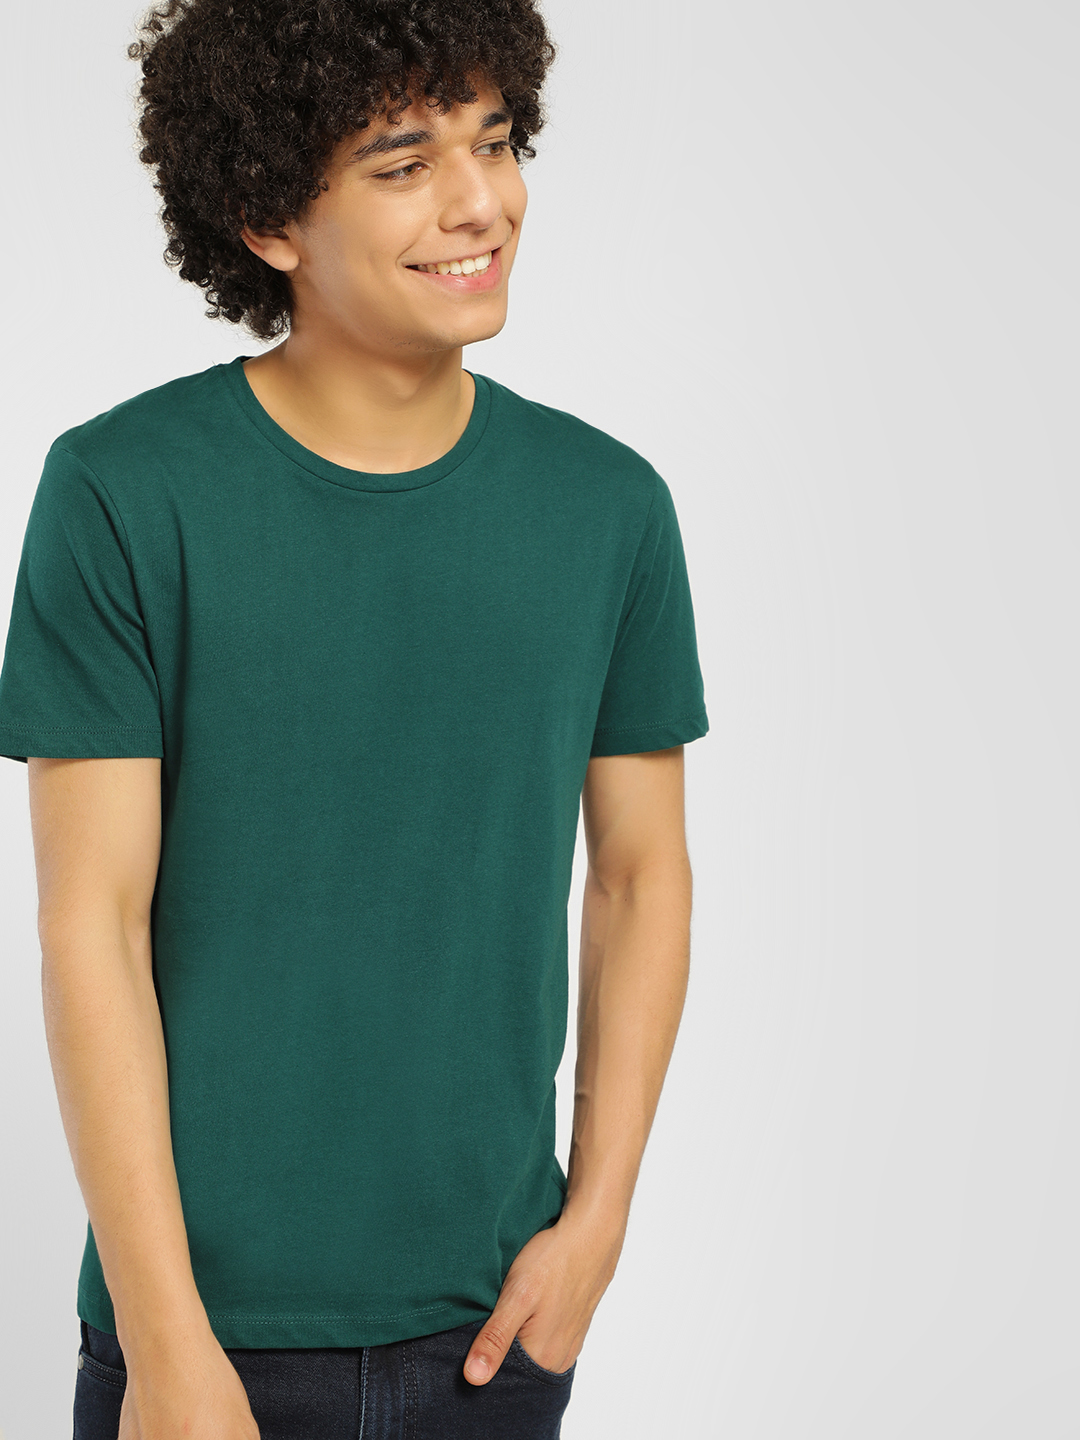 Celio Green Basic Crew Neck T-Shirt 1